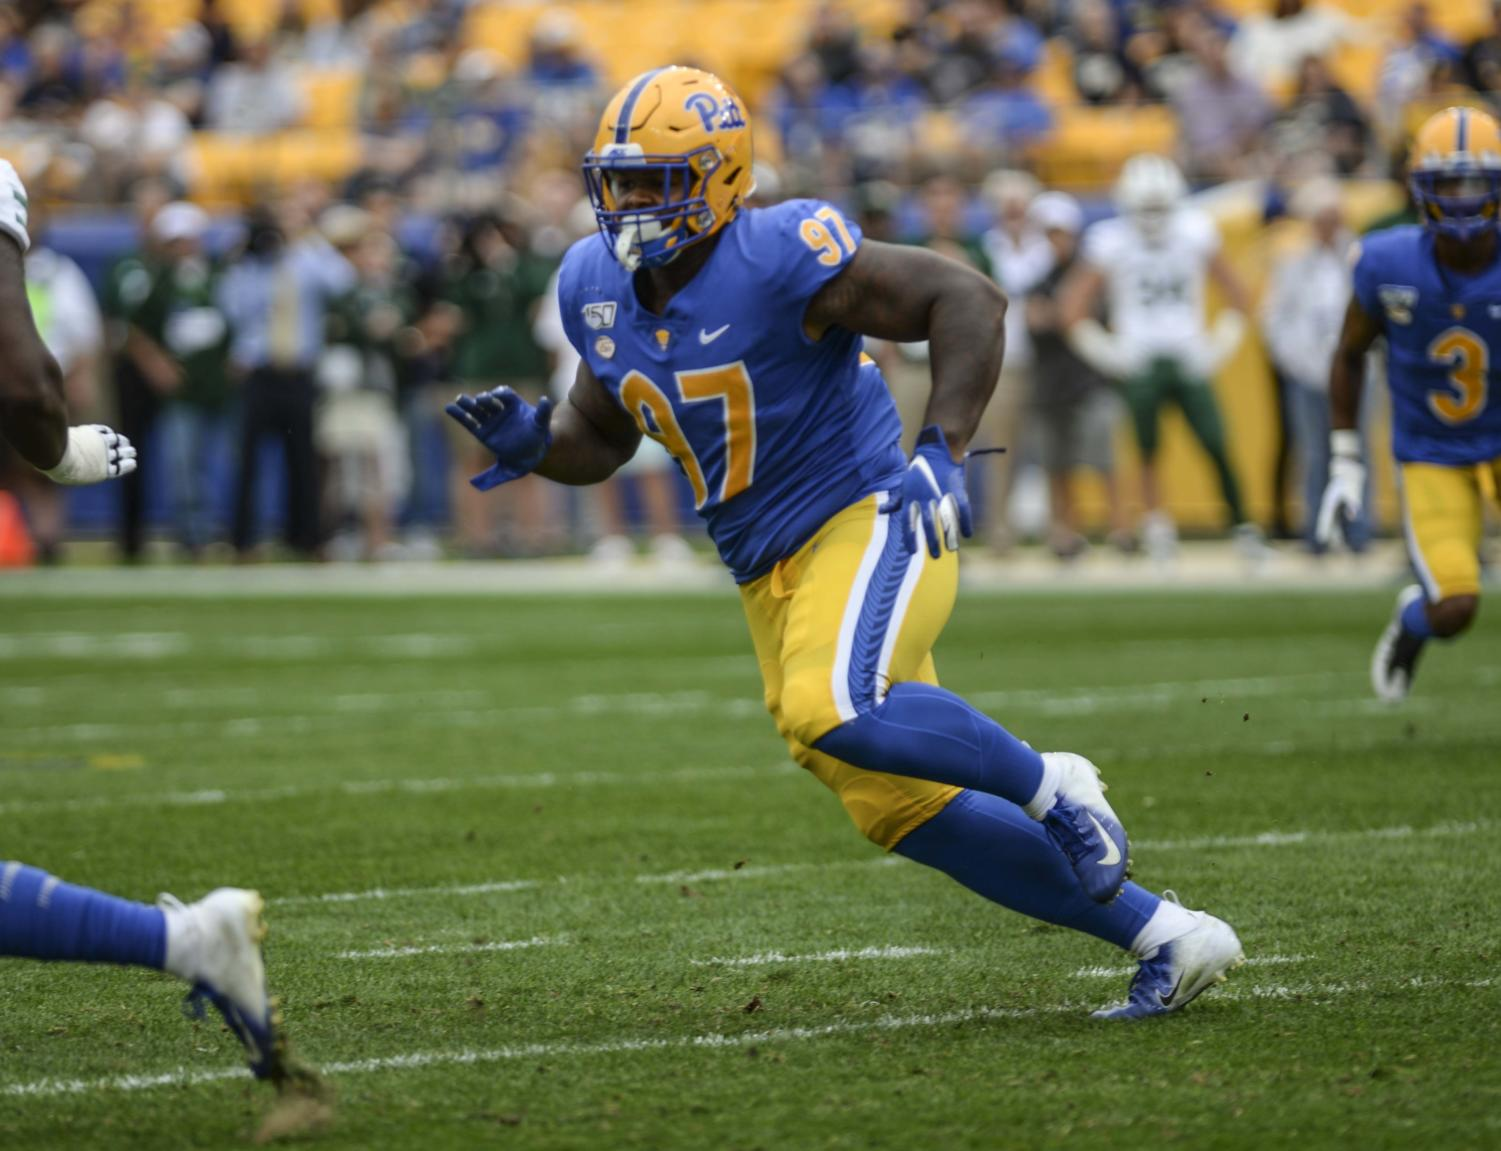 Jaylen Twyman rushes to tackle. Twyman contributed seven sacks to Pitt's total of 36, which is the highest in the nation this season.